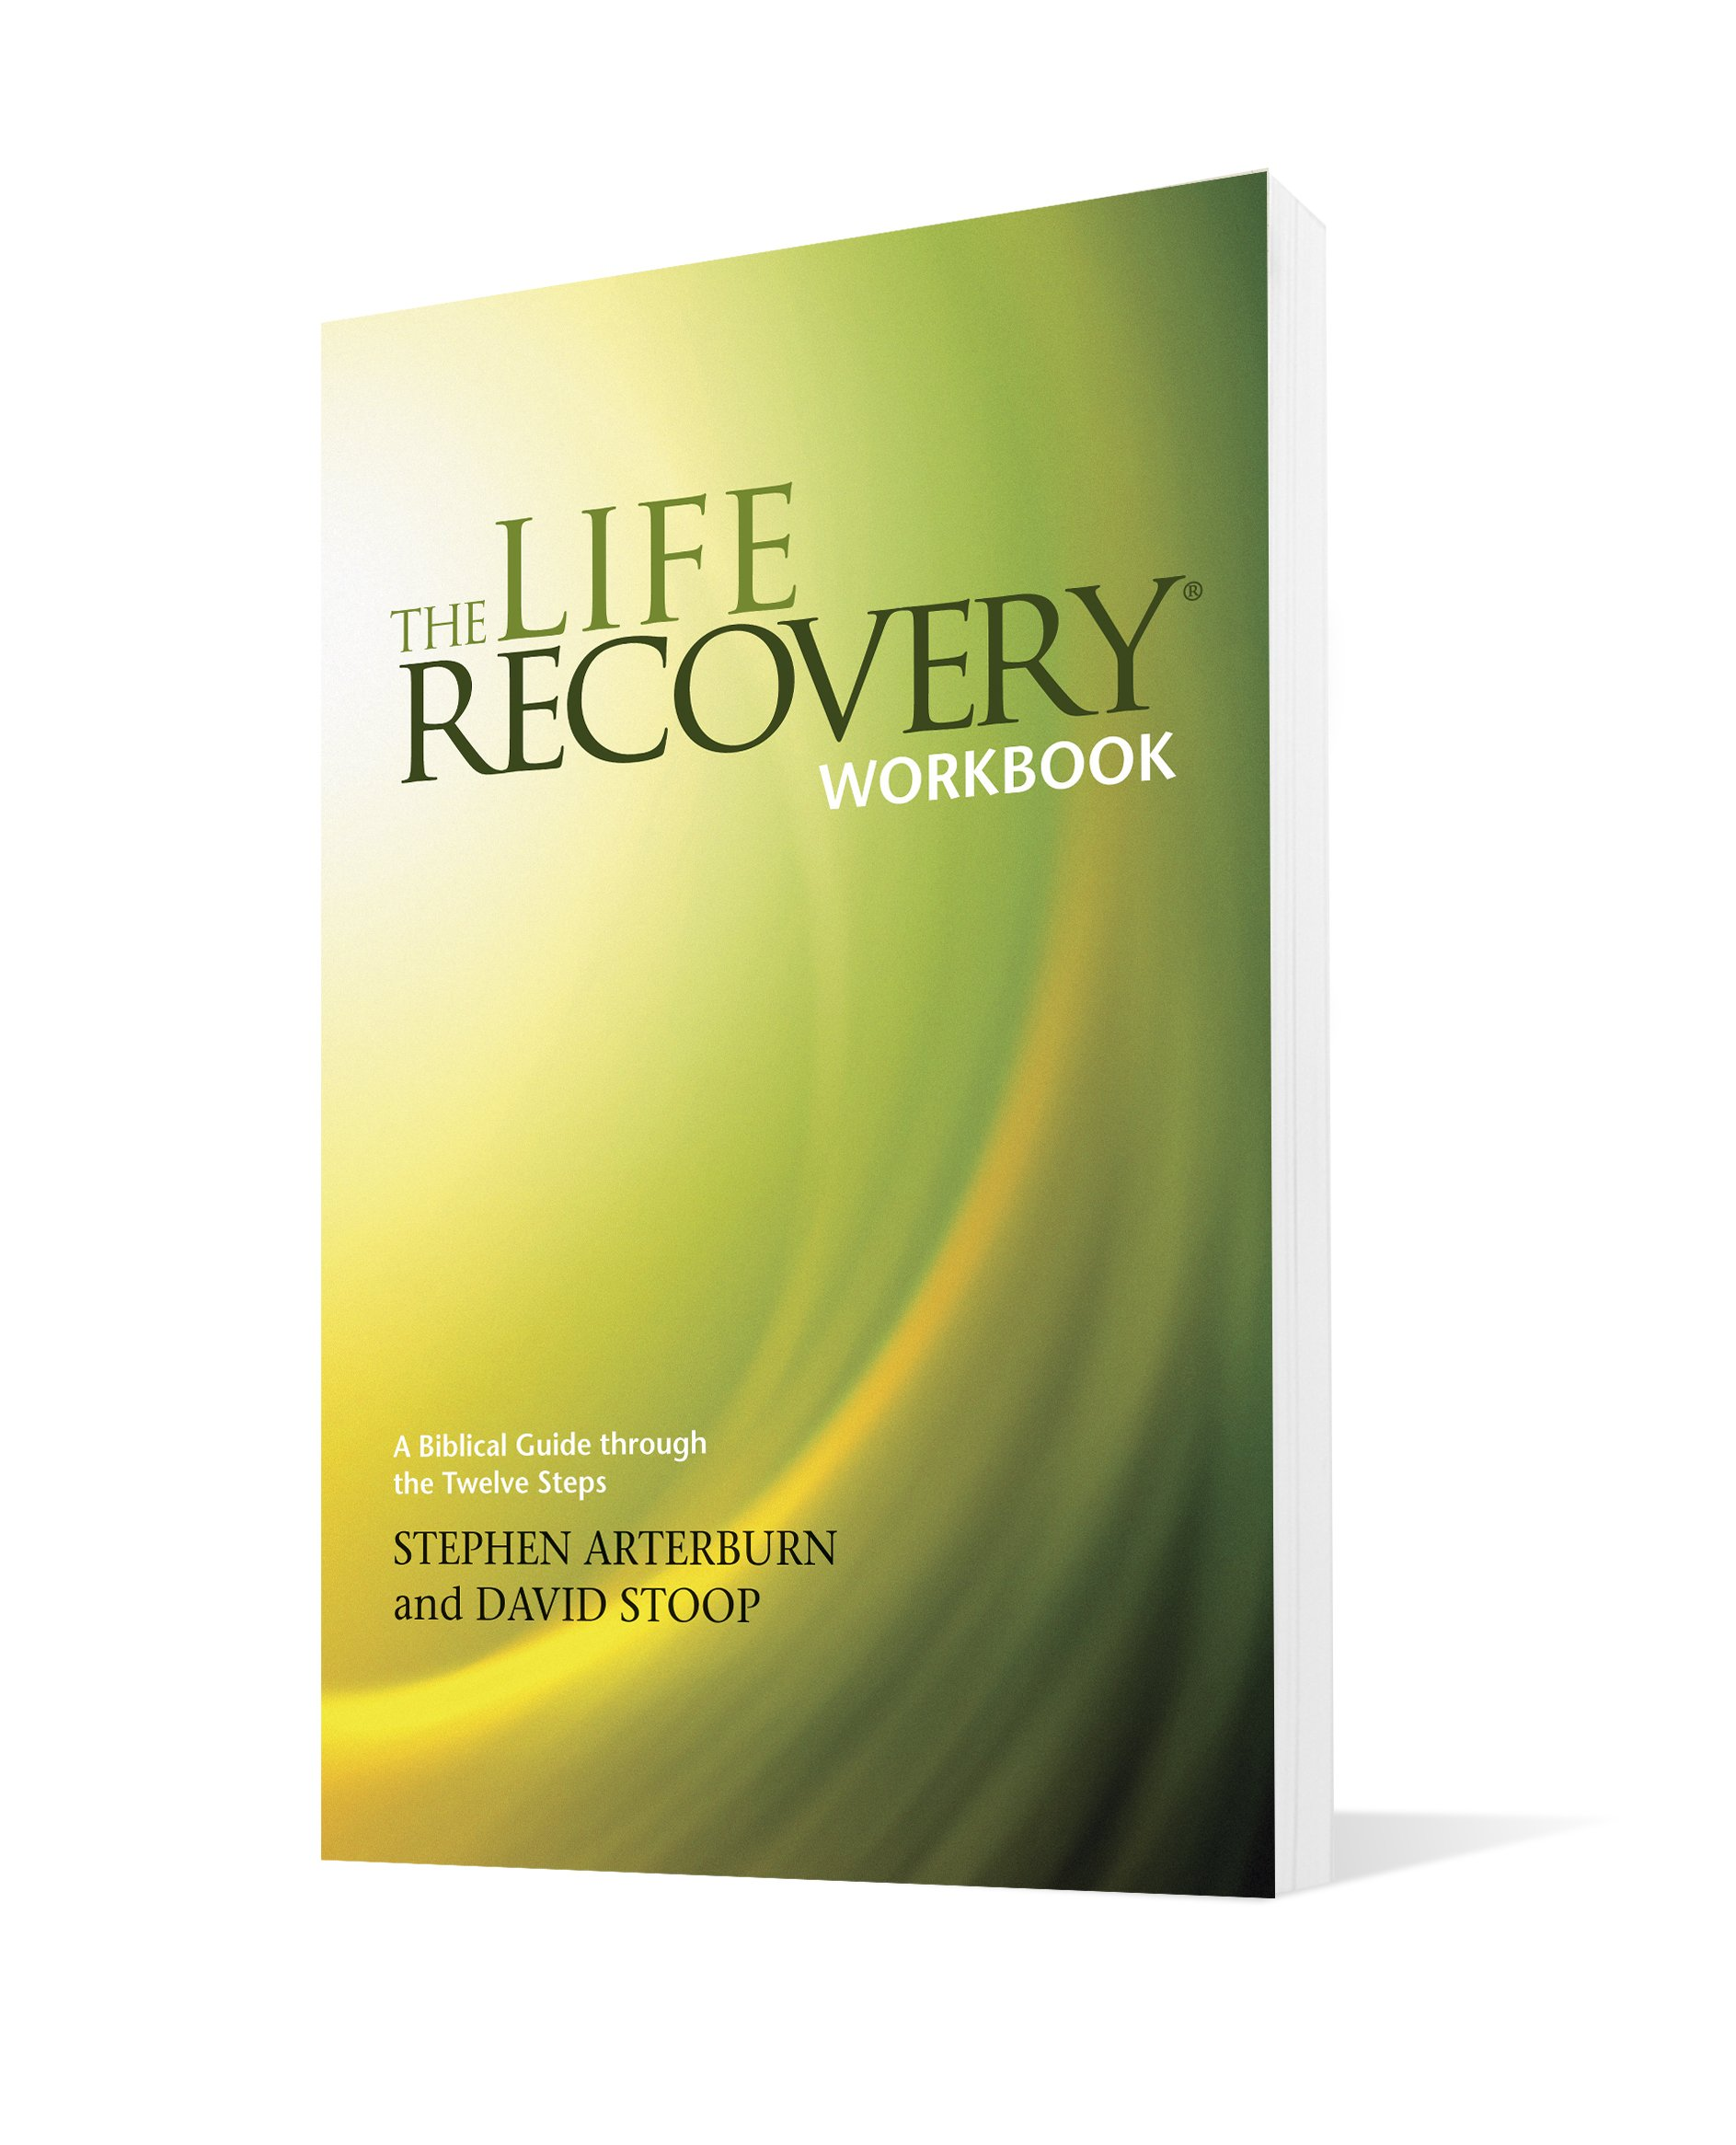 The life recovery workbook a biblical guide through the twelve the life recovery workbook a biblical guide through the twelve steps stephen arterburn david stoop 9781414321875 amazon books fandeluxe Image collections